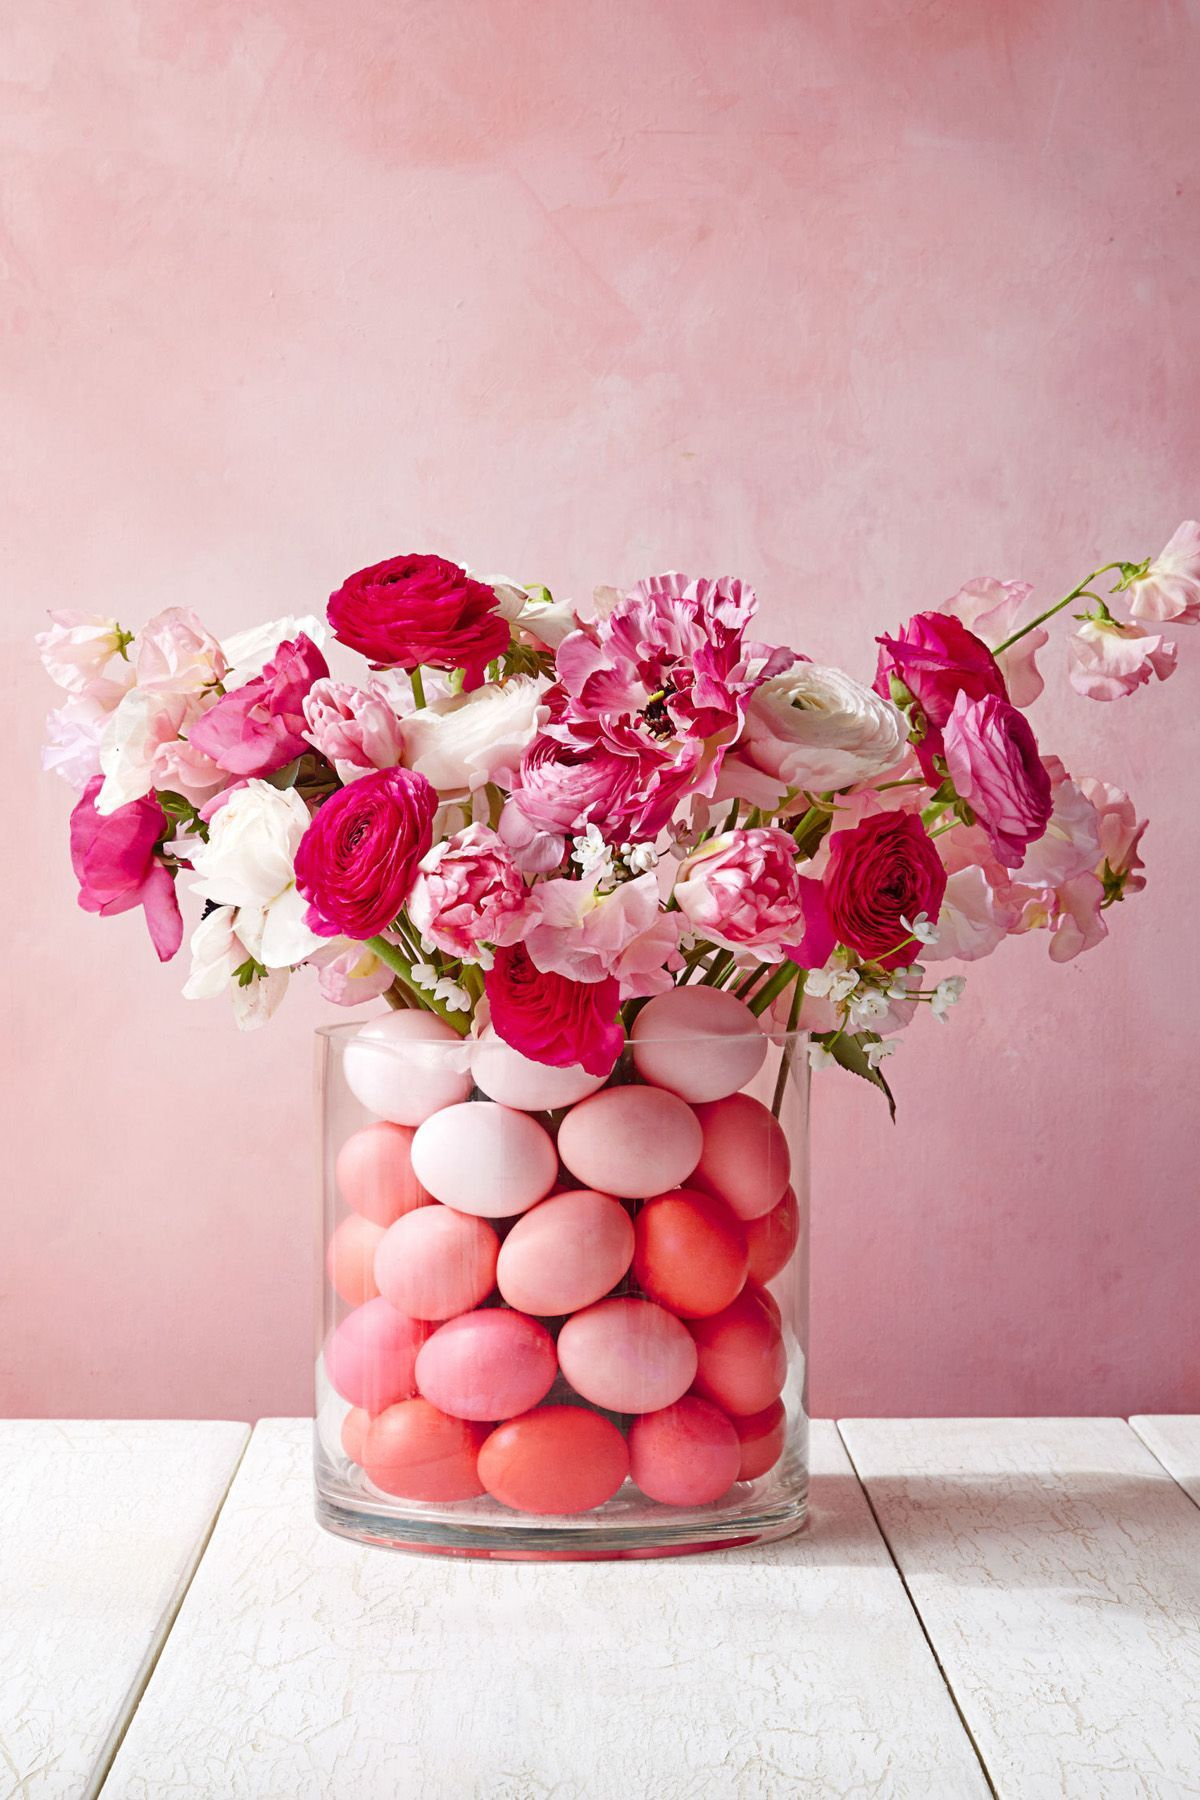 20 Easter Flower Arrangements For a Stunning Holiday Table